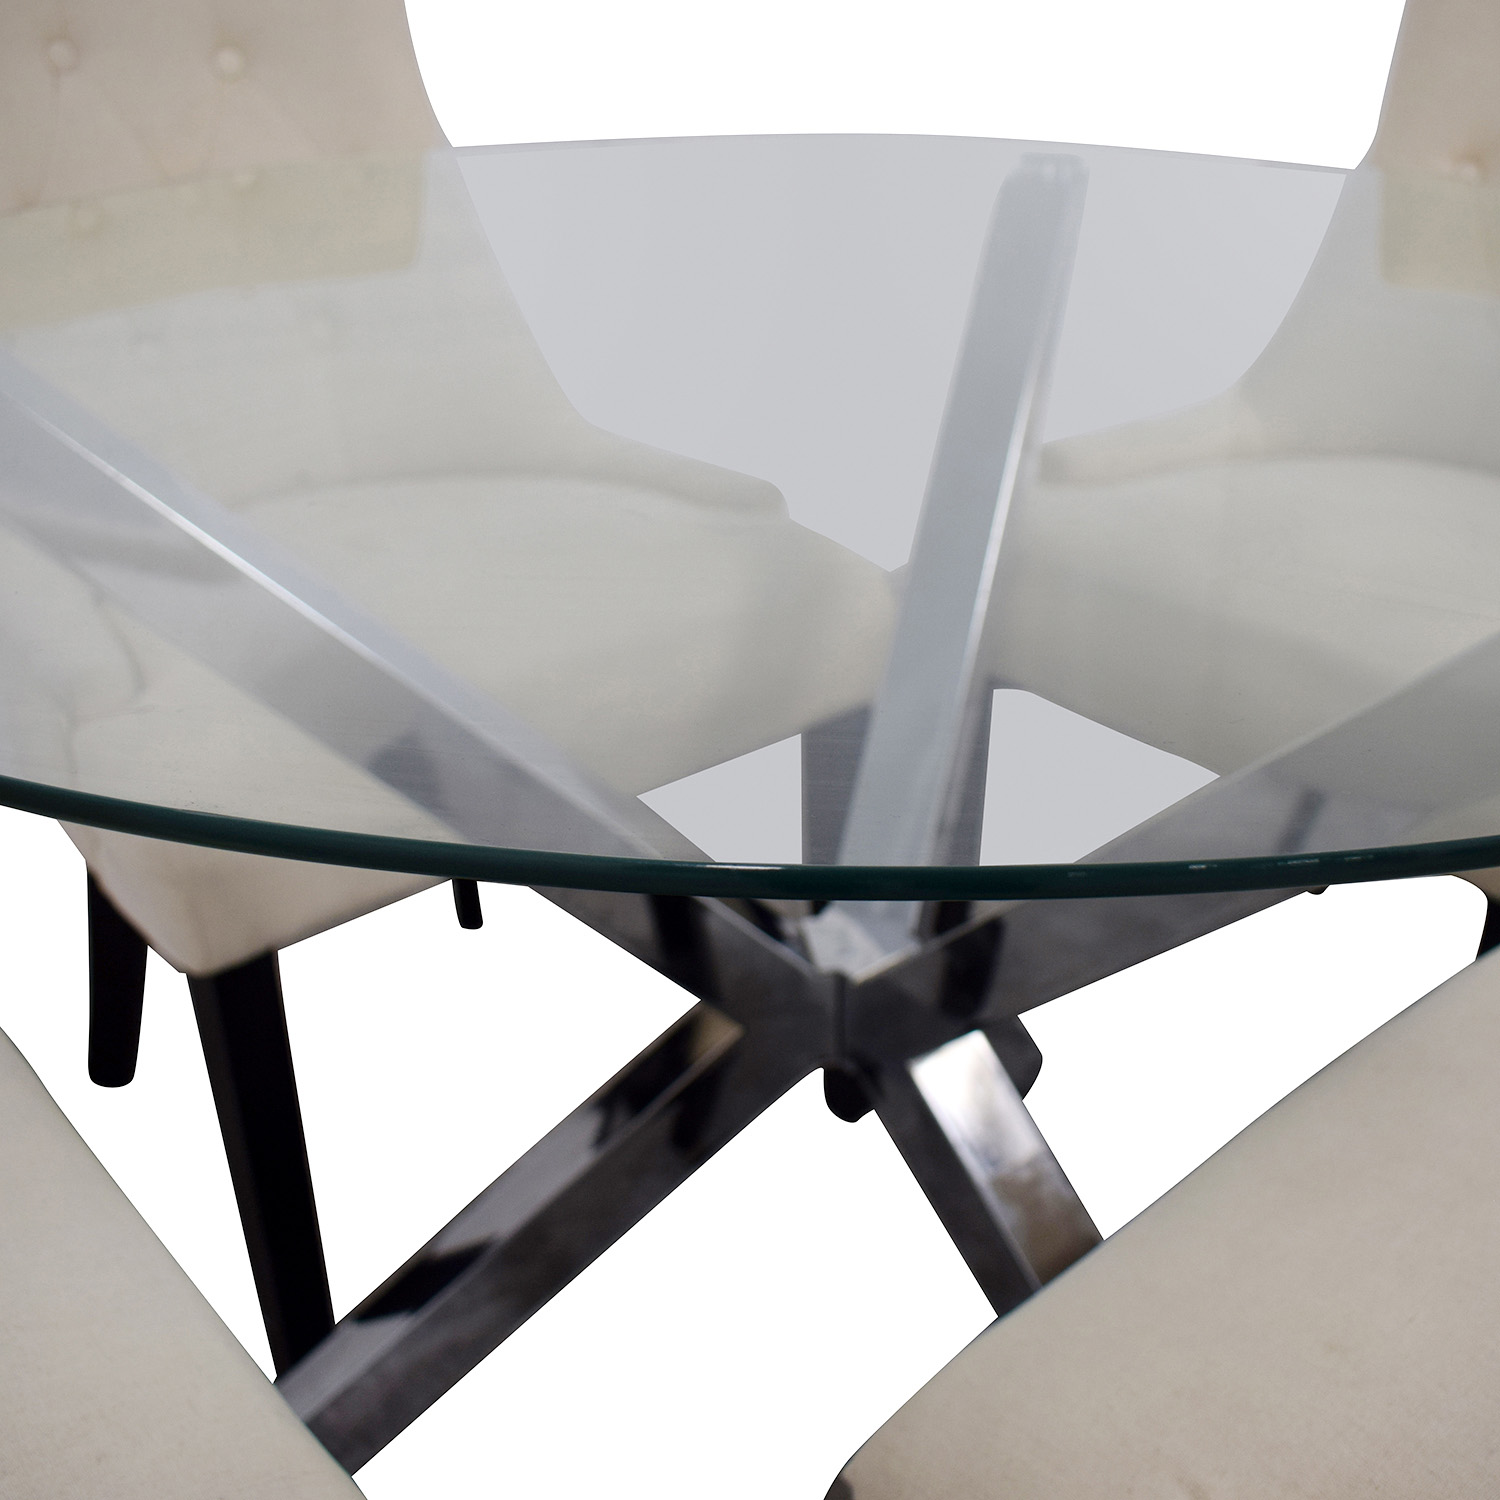 Wayfair Wayfair Round Glass Dining Set used